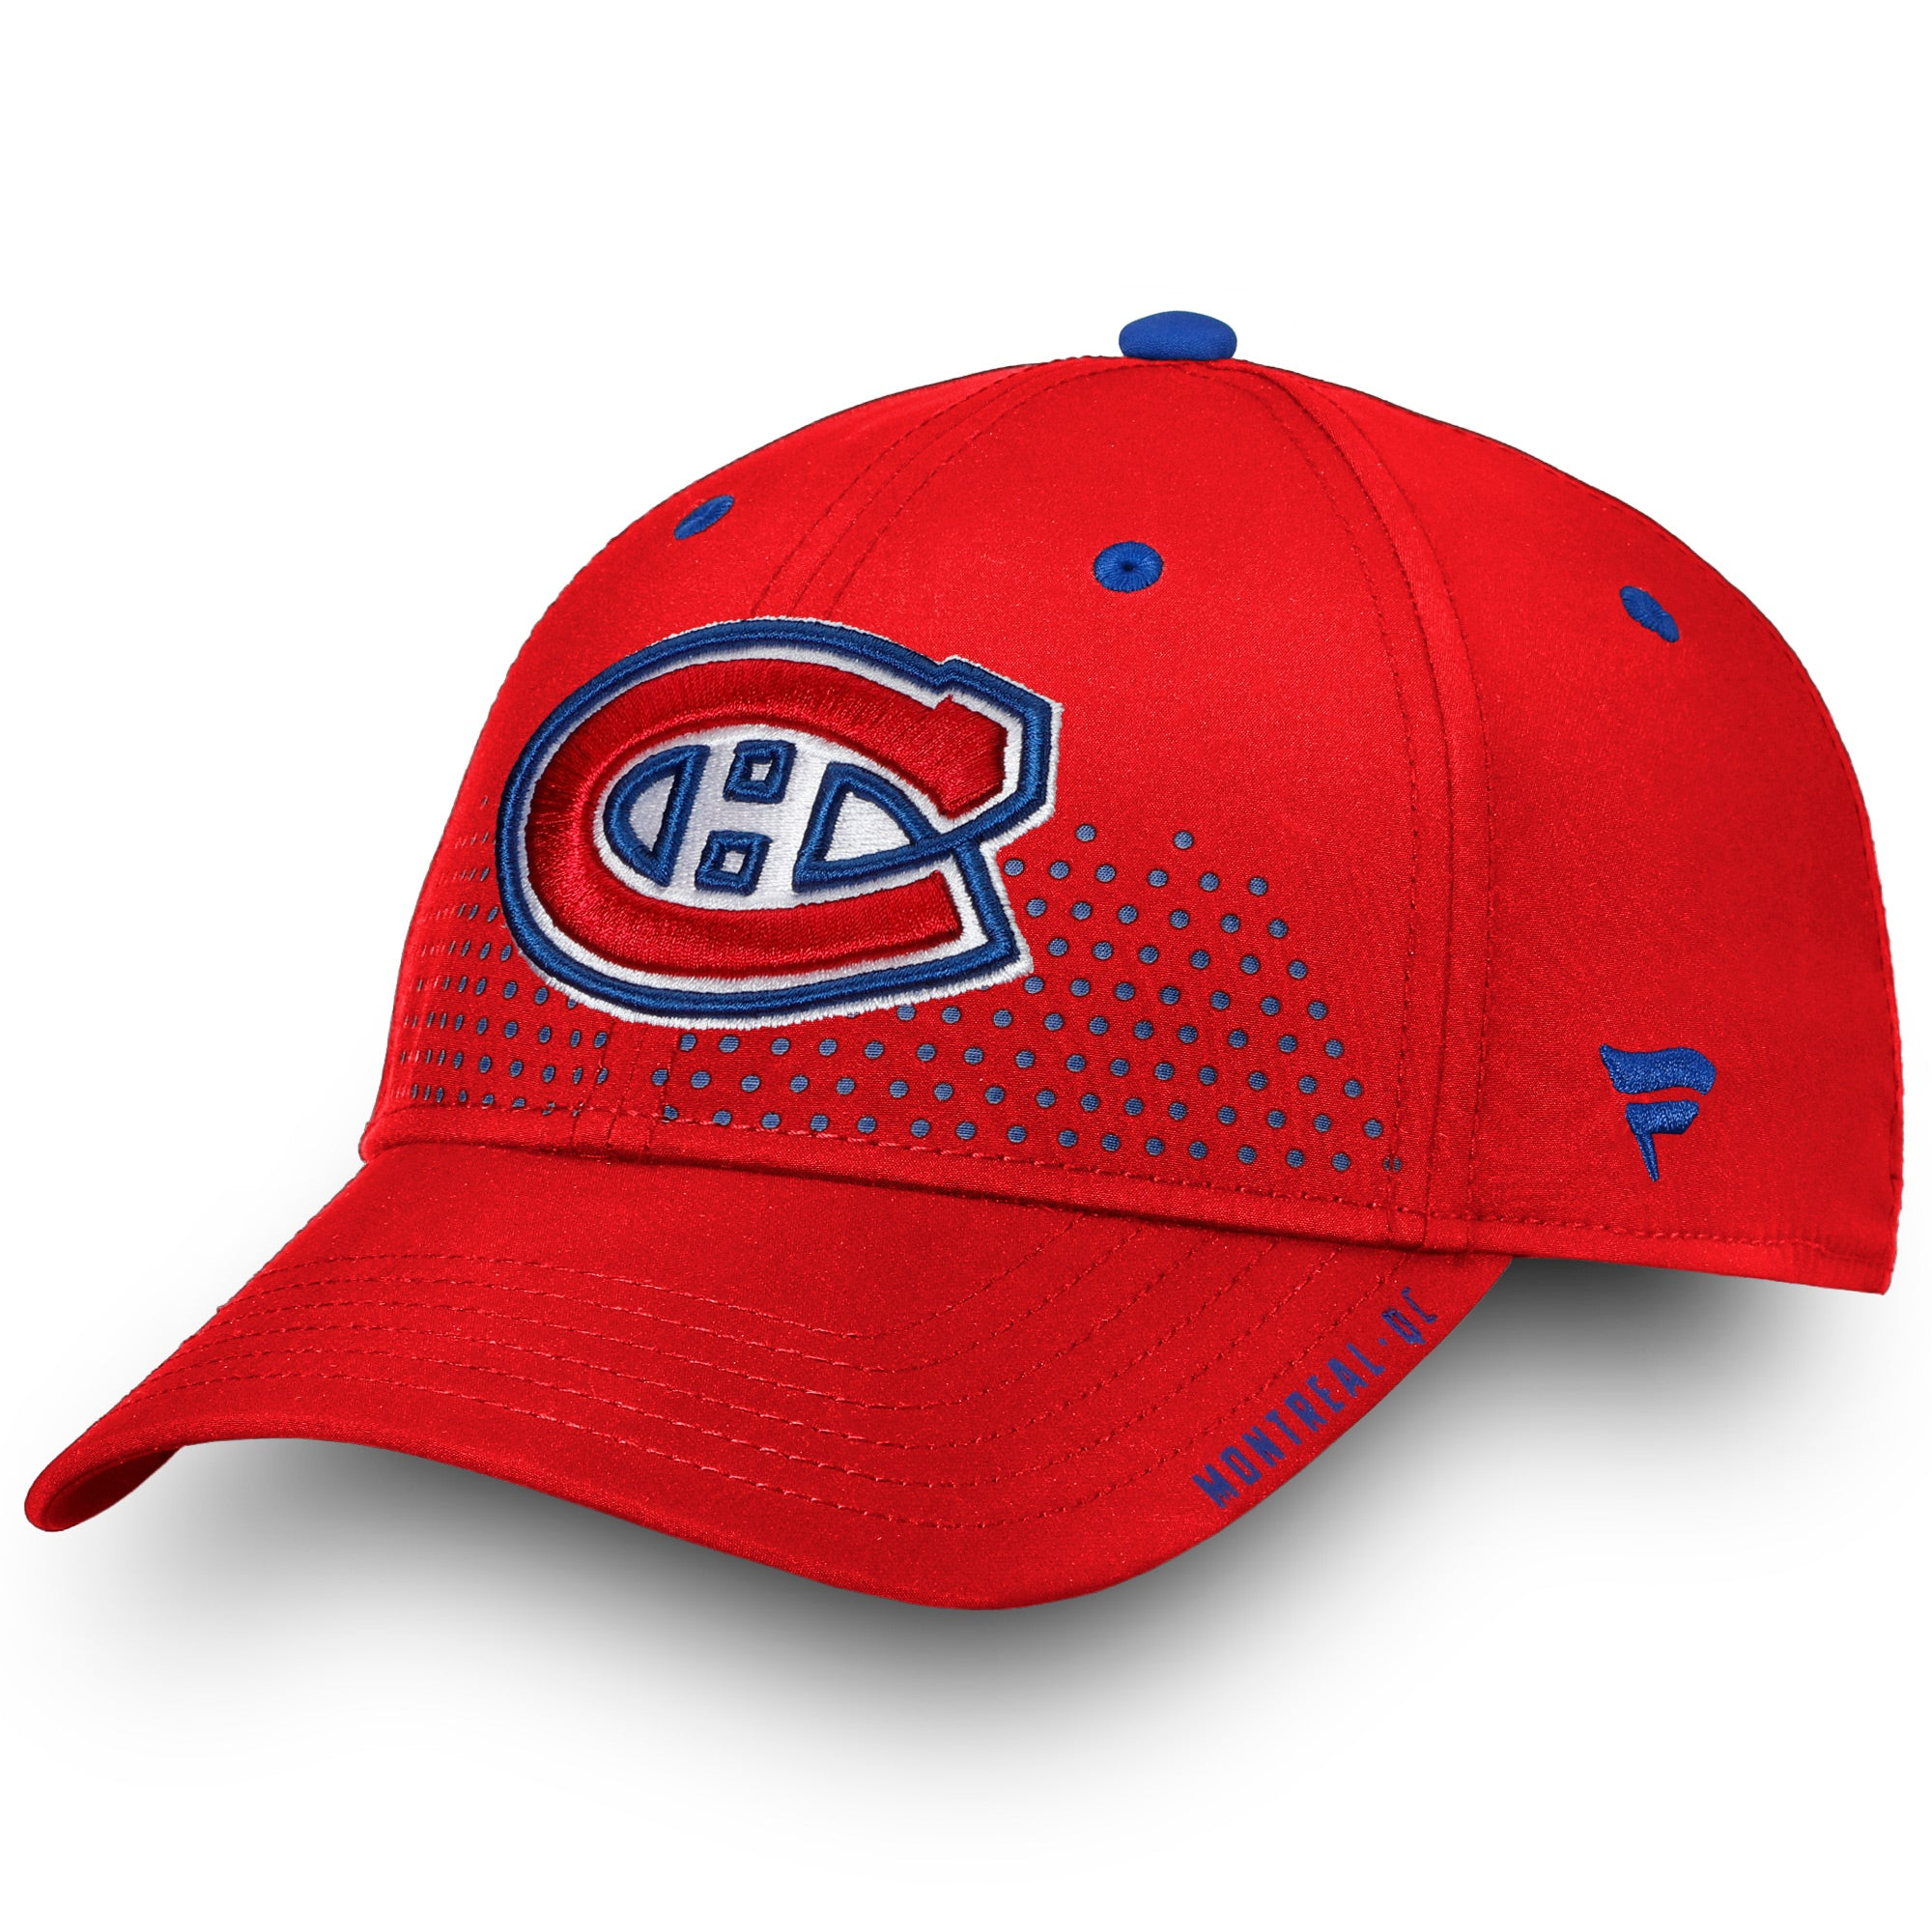 fe24e7473 Men s 2018 Montreal Canadiens Fanatics Official Draft Structured Flex Hat -  Multiple Sizes - Bleacher Bum ...